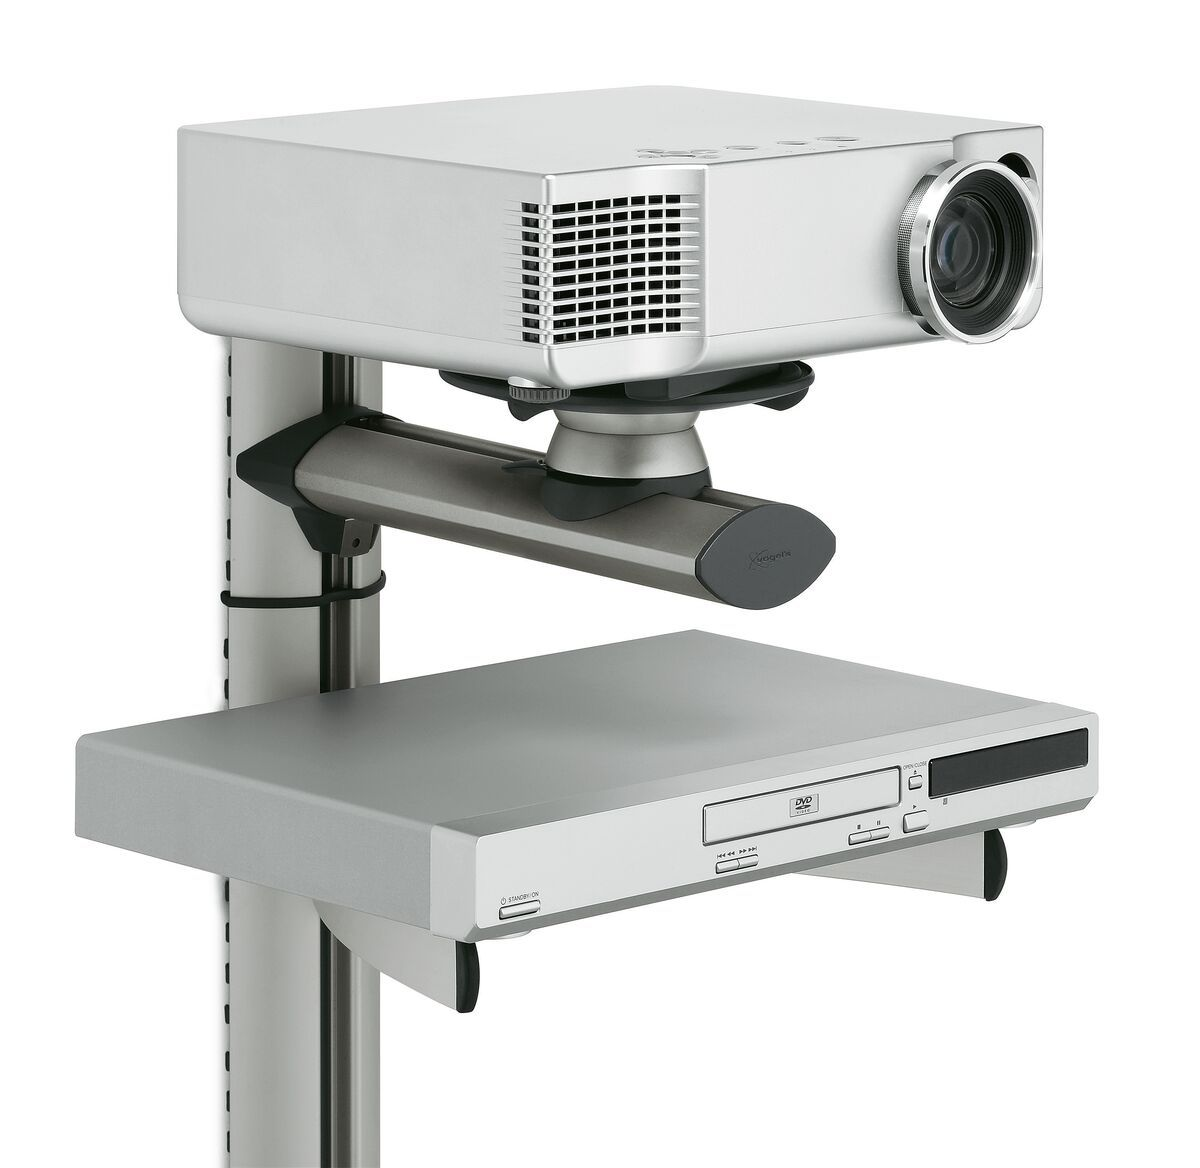 Vogel's EPW 6565 Projector Wall Mount - Charge maximale : 10 - Charge maximale : Application